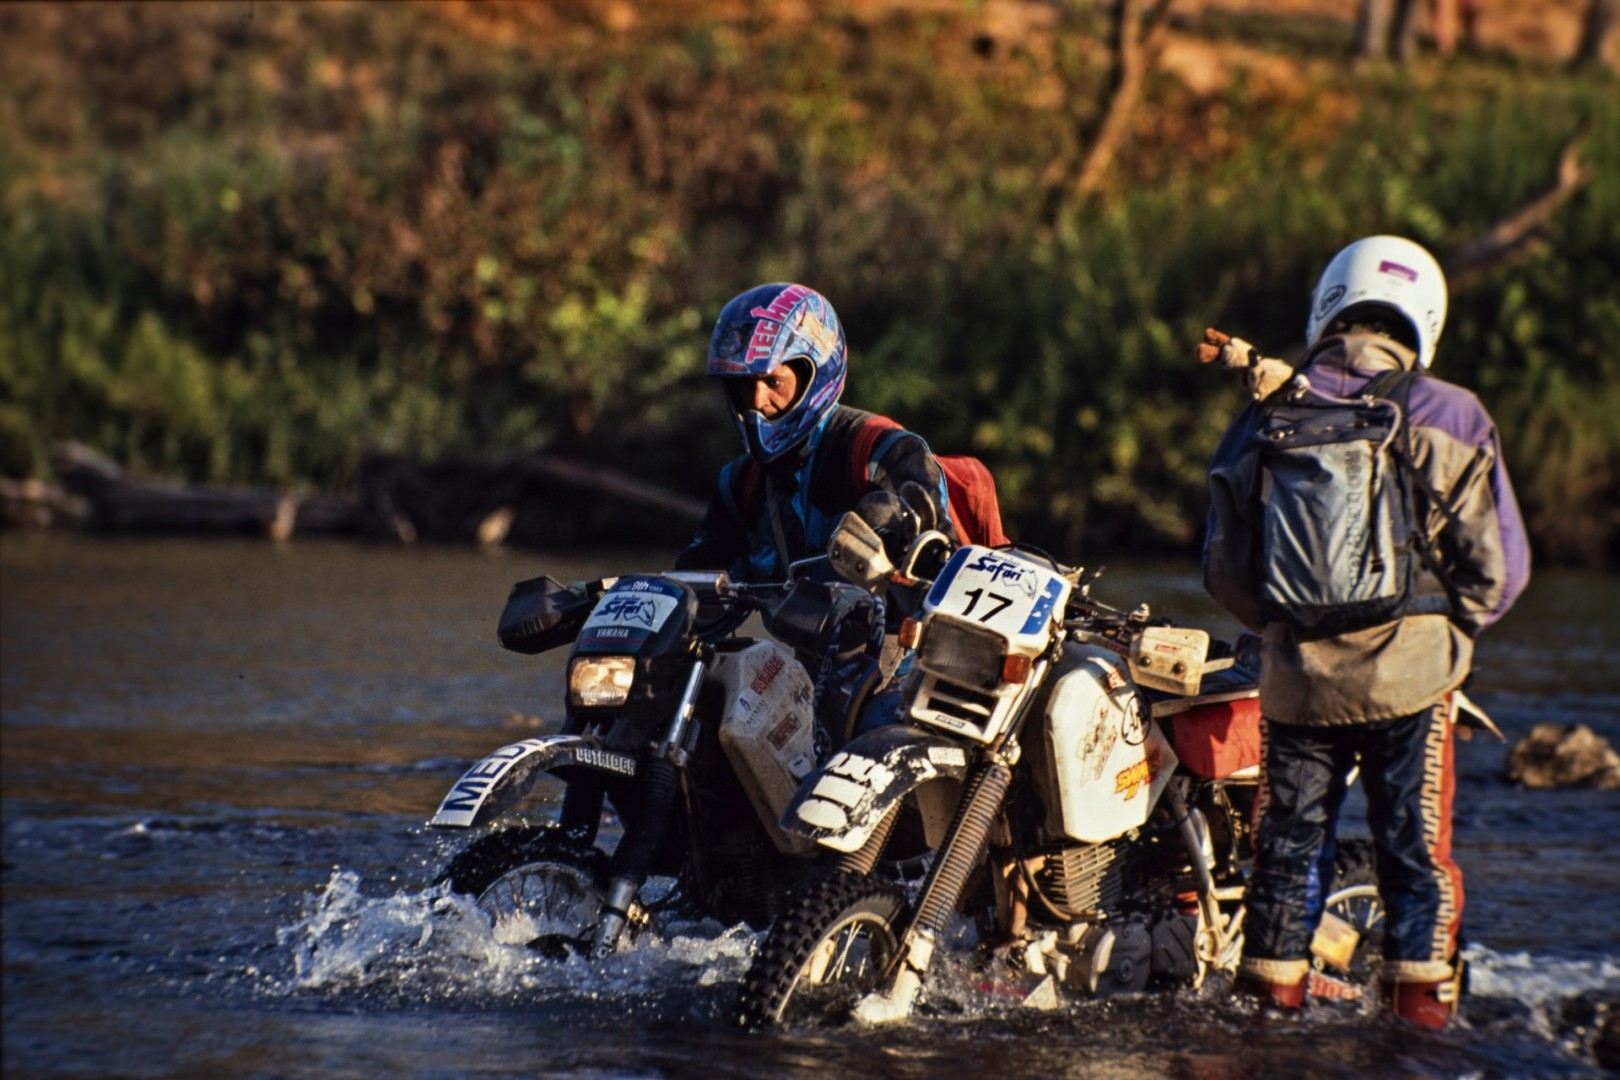 Sometime, my job was to cross a river riding a motorcycle (Australian Safary 1992). My motivation was to get as close as possible to the race while preserving my camera